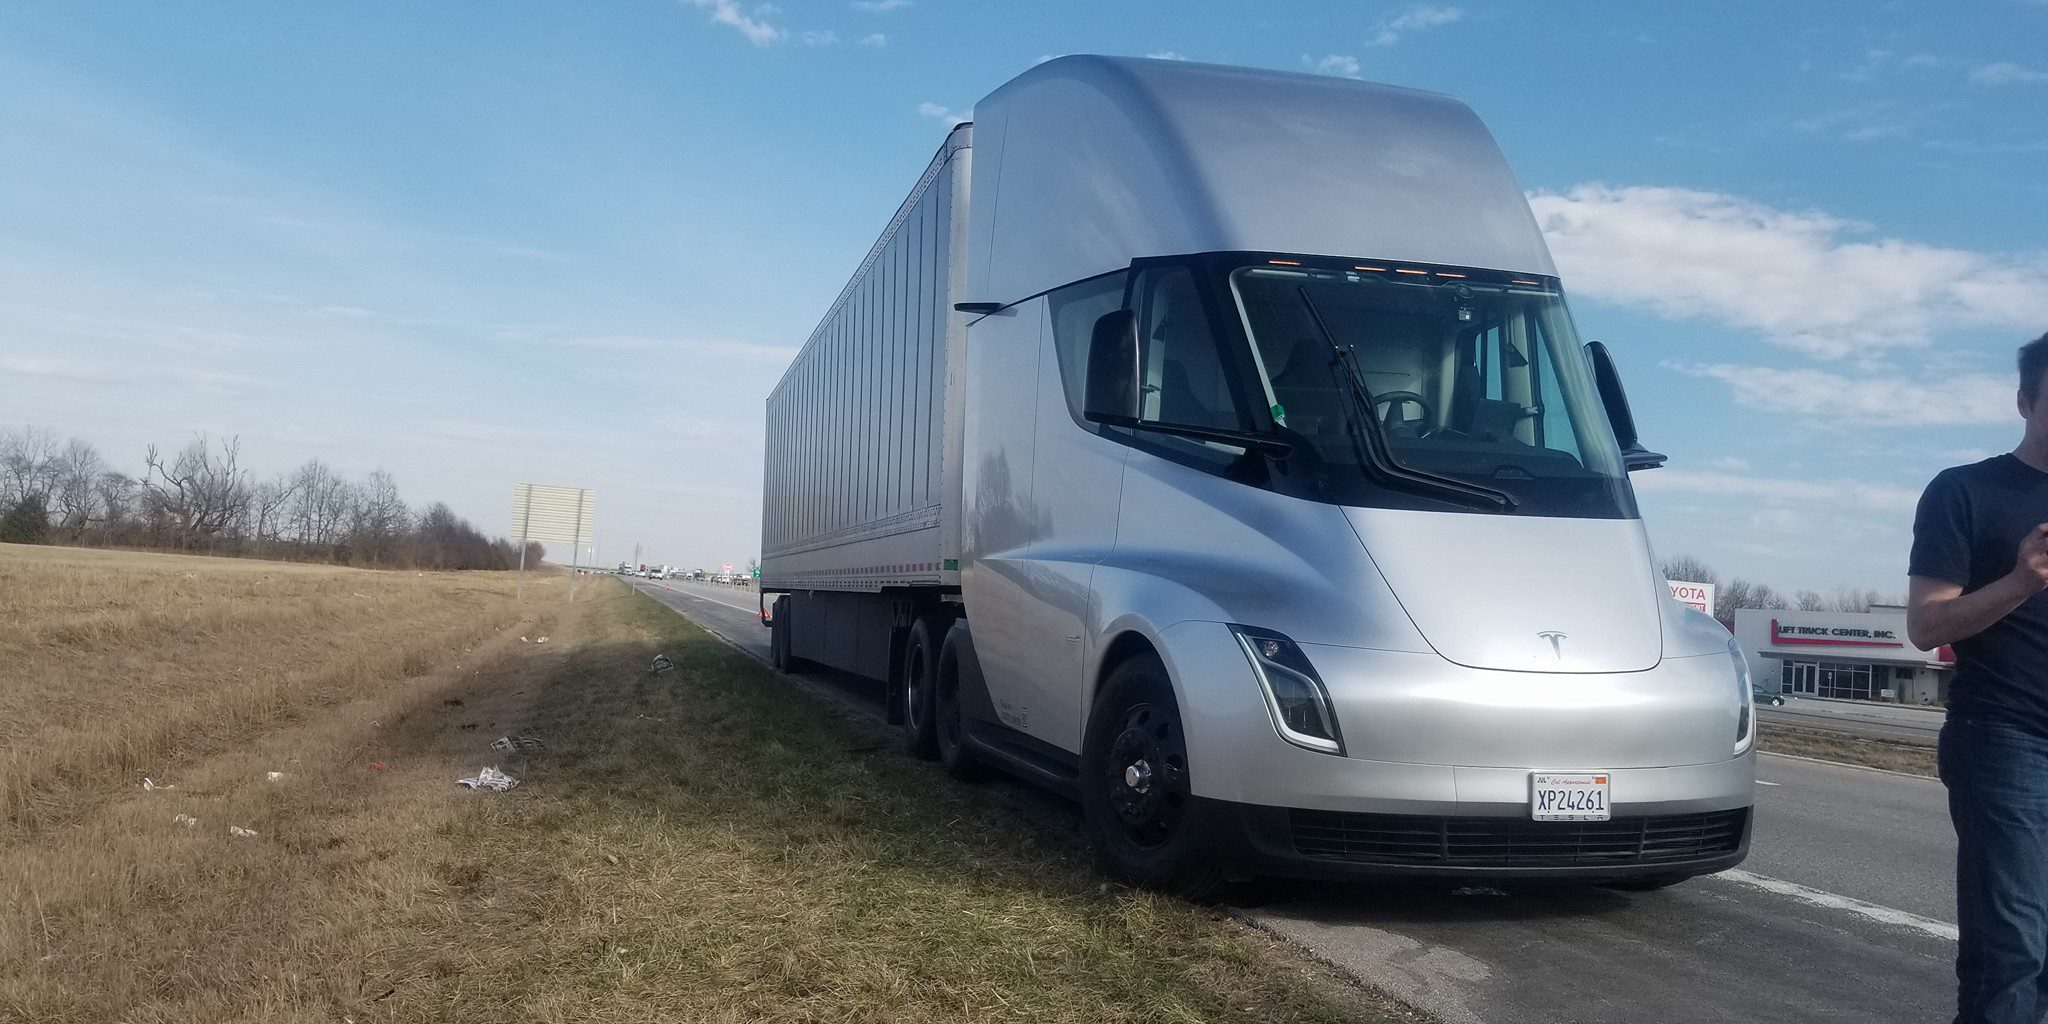 Use Truck Beautiful Fedex orders 20 Tesla Semi Electric Trucks to Use In Its Freight